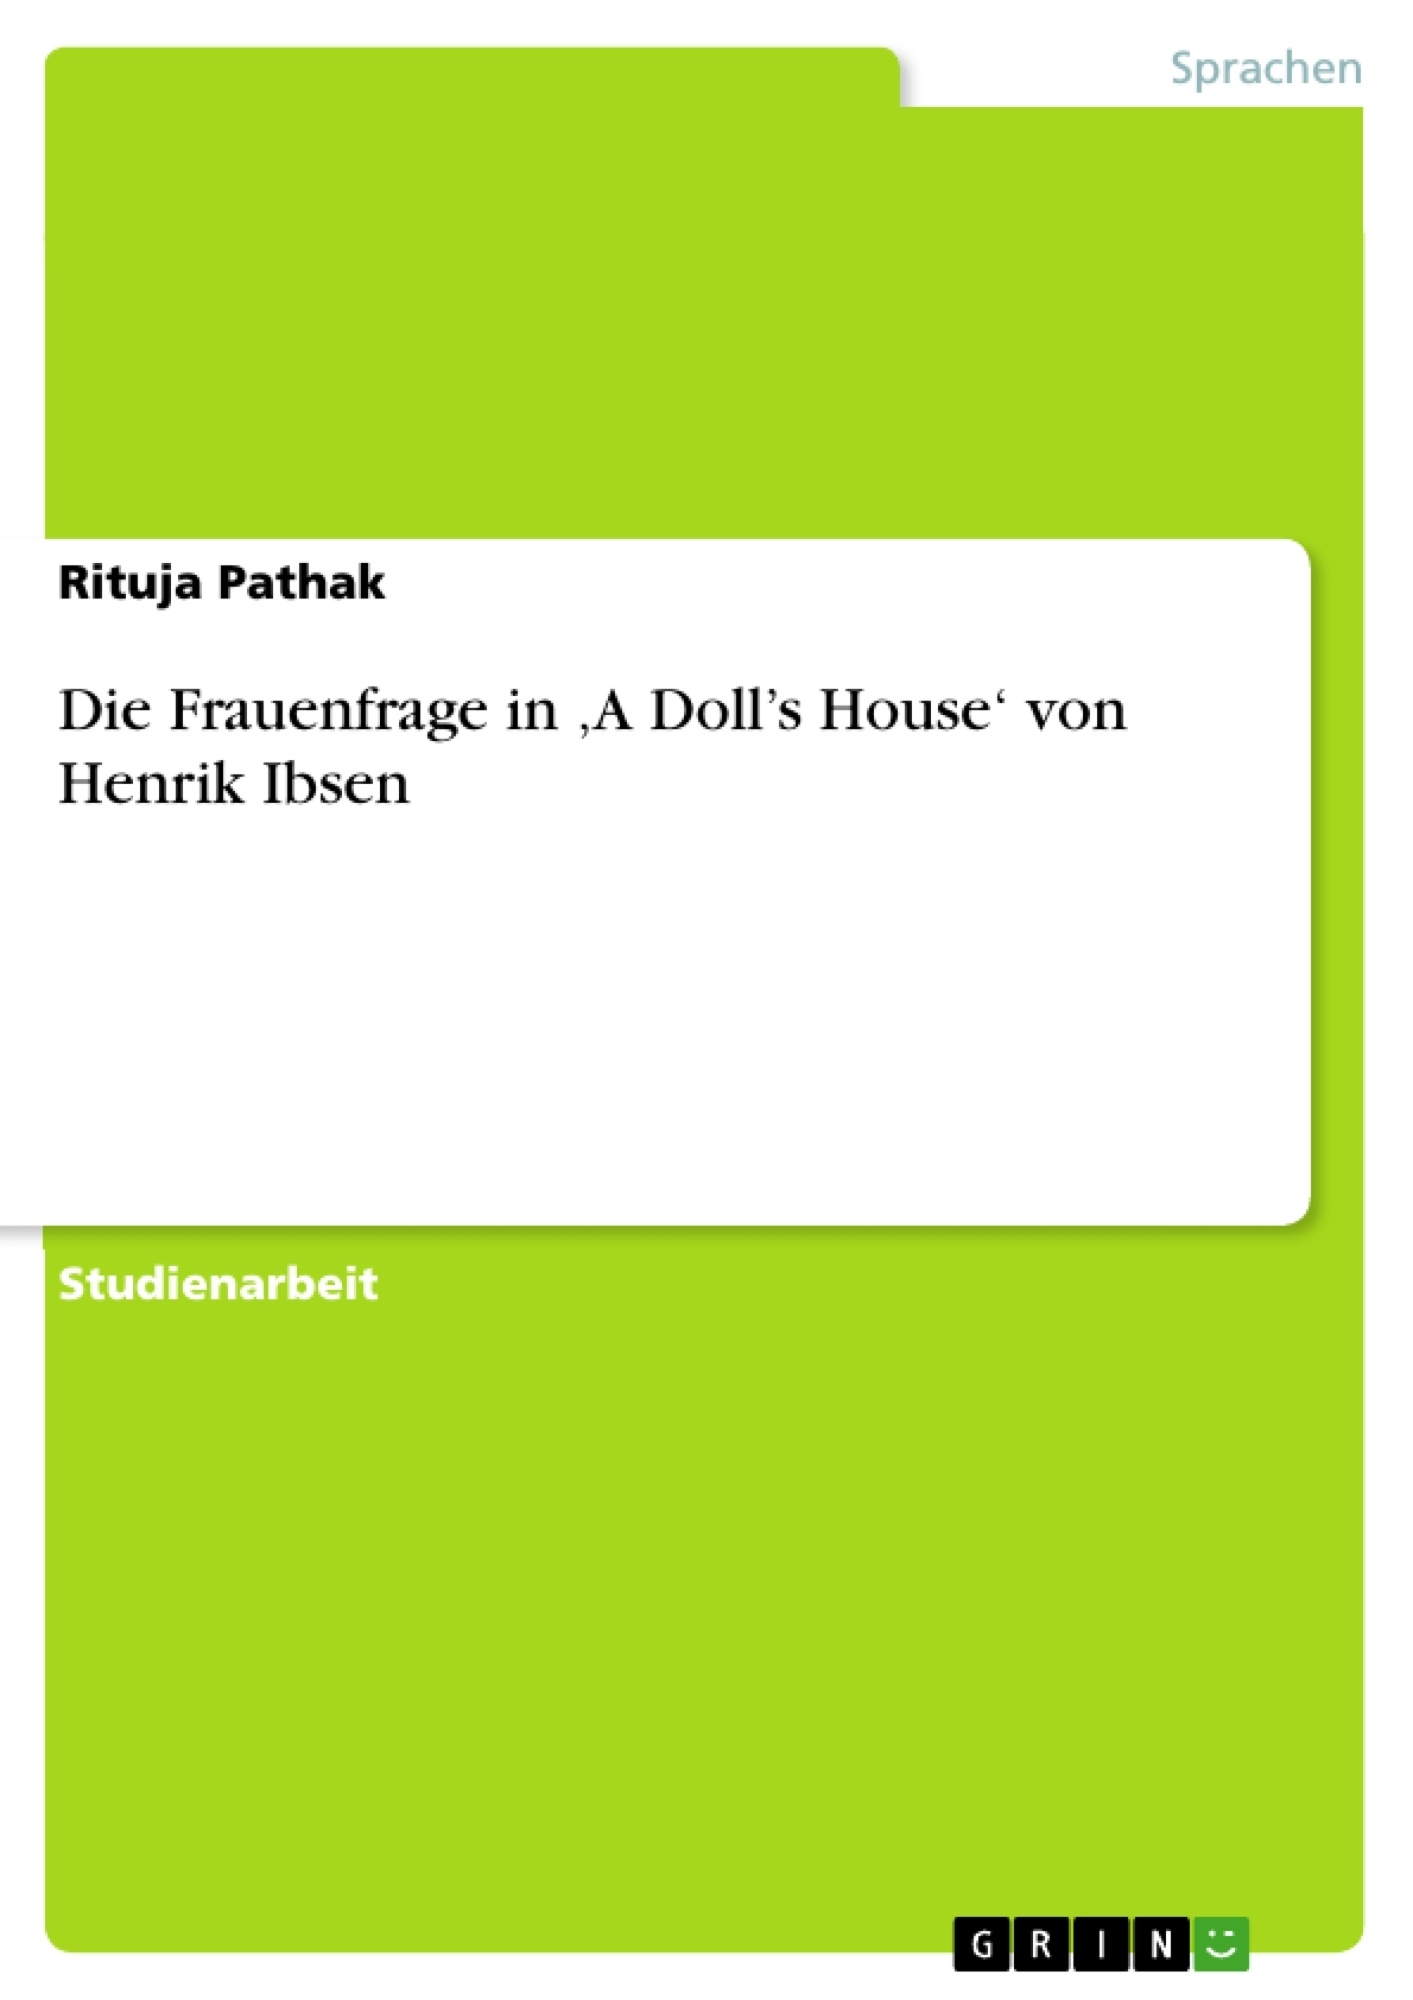 Titel: Die Frauenfrage in 'A Doll's House' von Henrik Ibsen